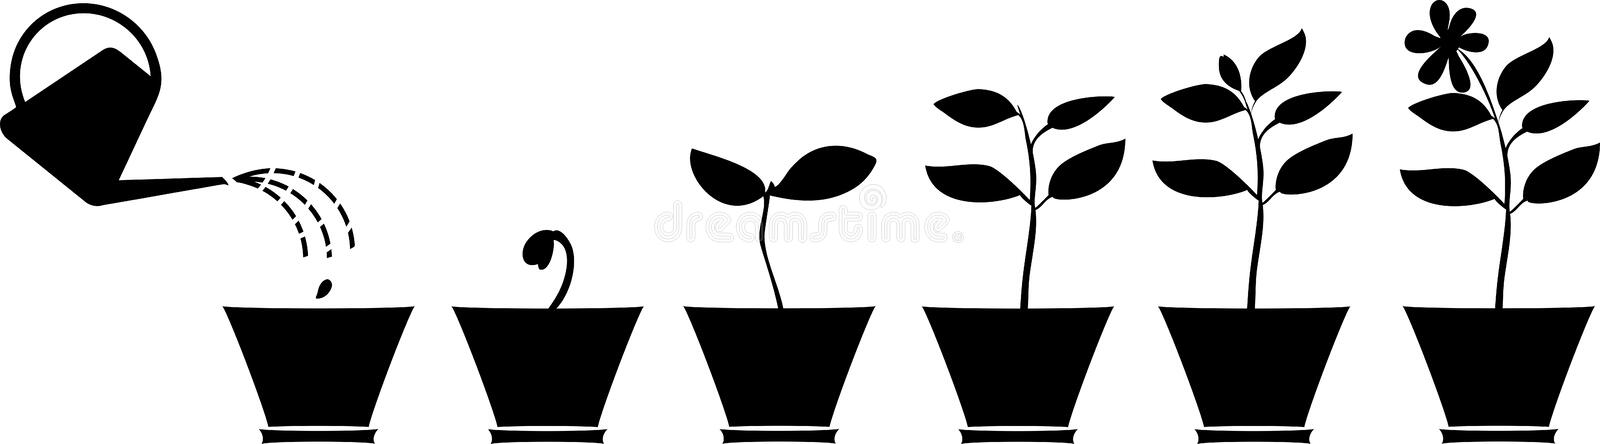 Silhouettes of plants in the flowerpot. Scheme of flower growth. Silhouettes of plants in the flowerpot stock illustration